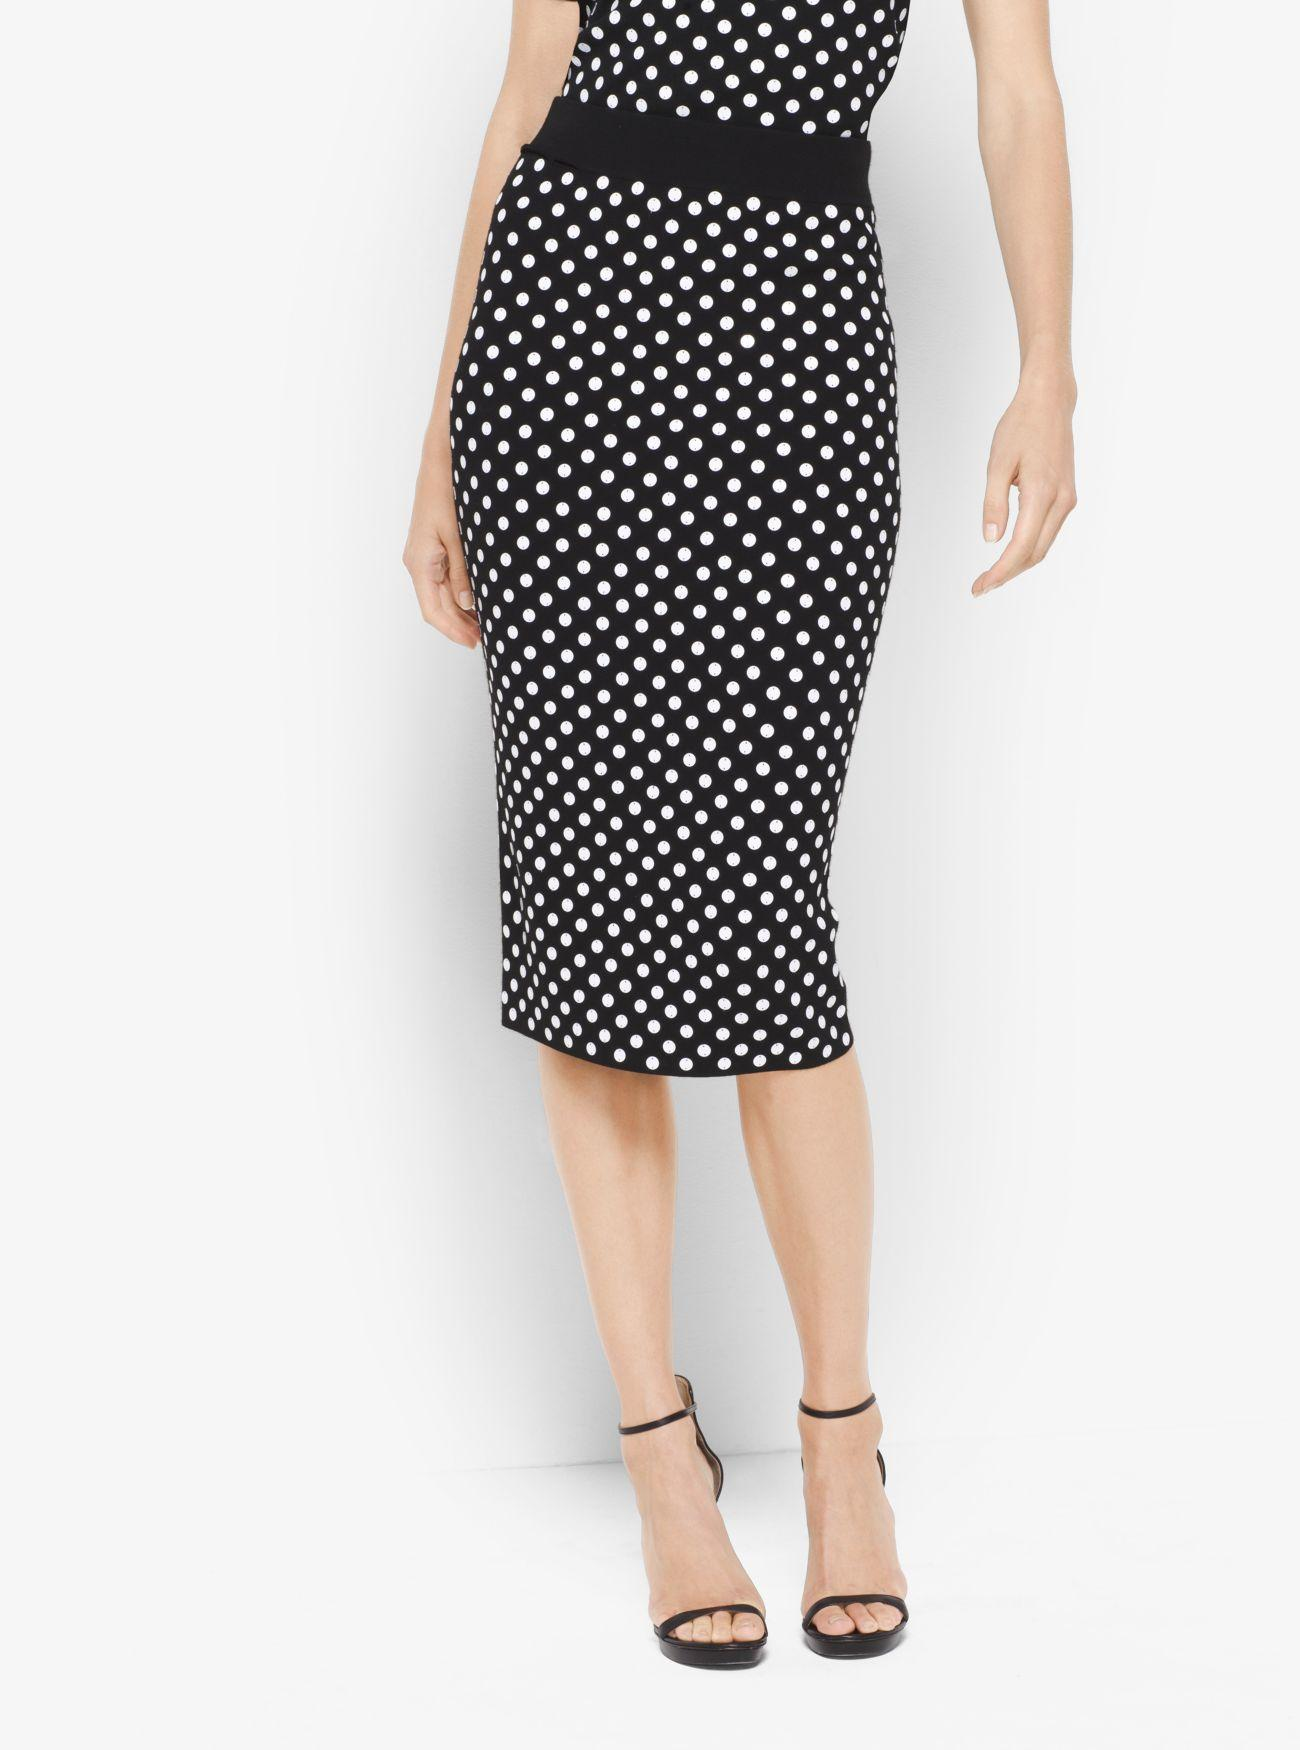 Michael kors Sequined Polka Dot Pencil Skirt in Black | Lyst